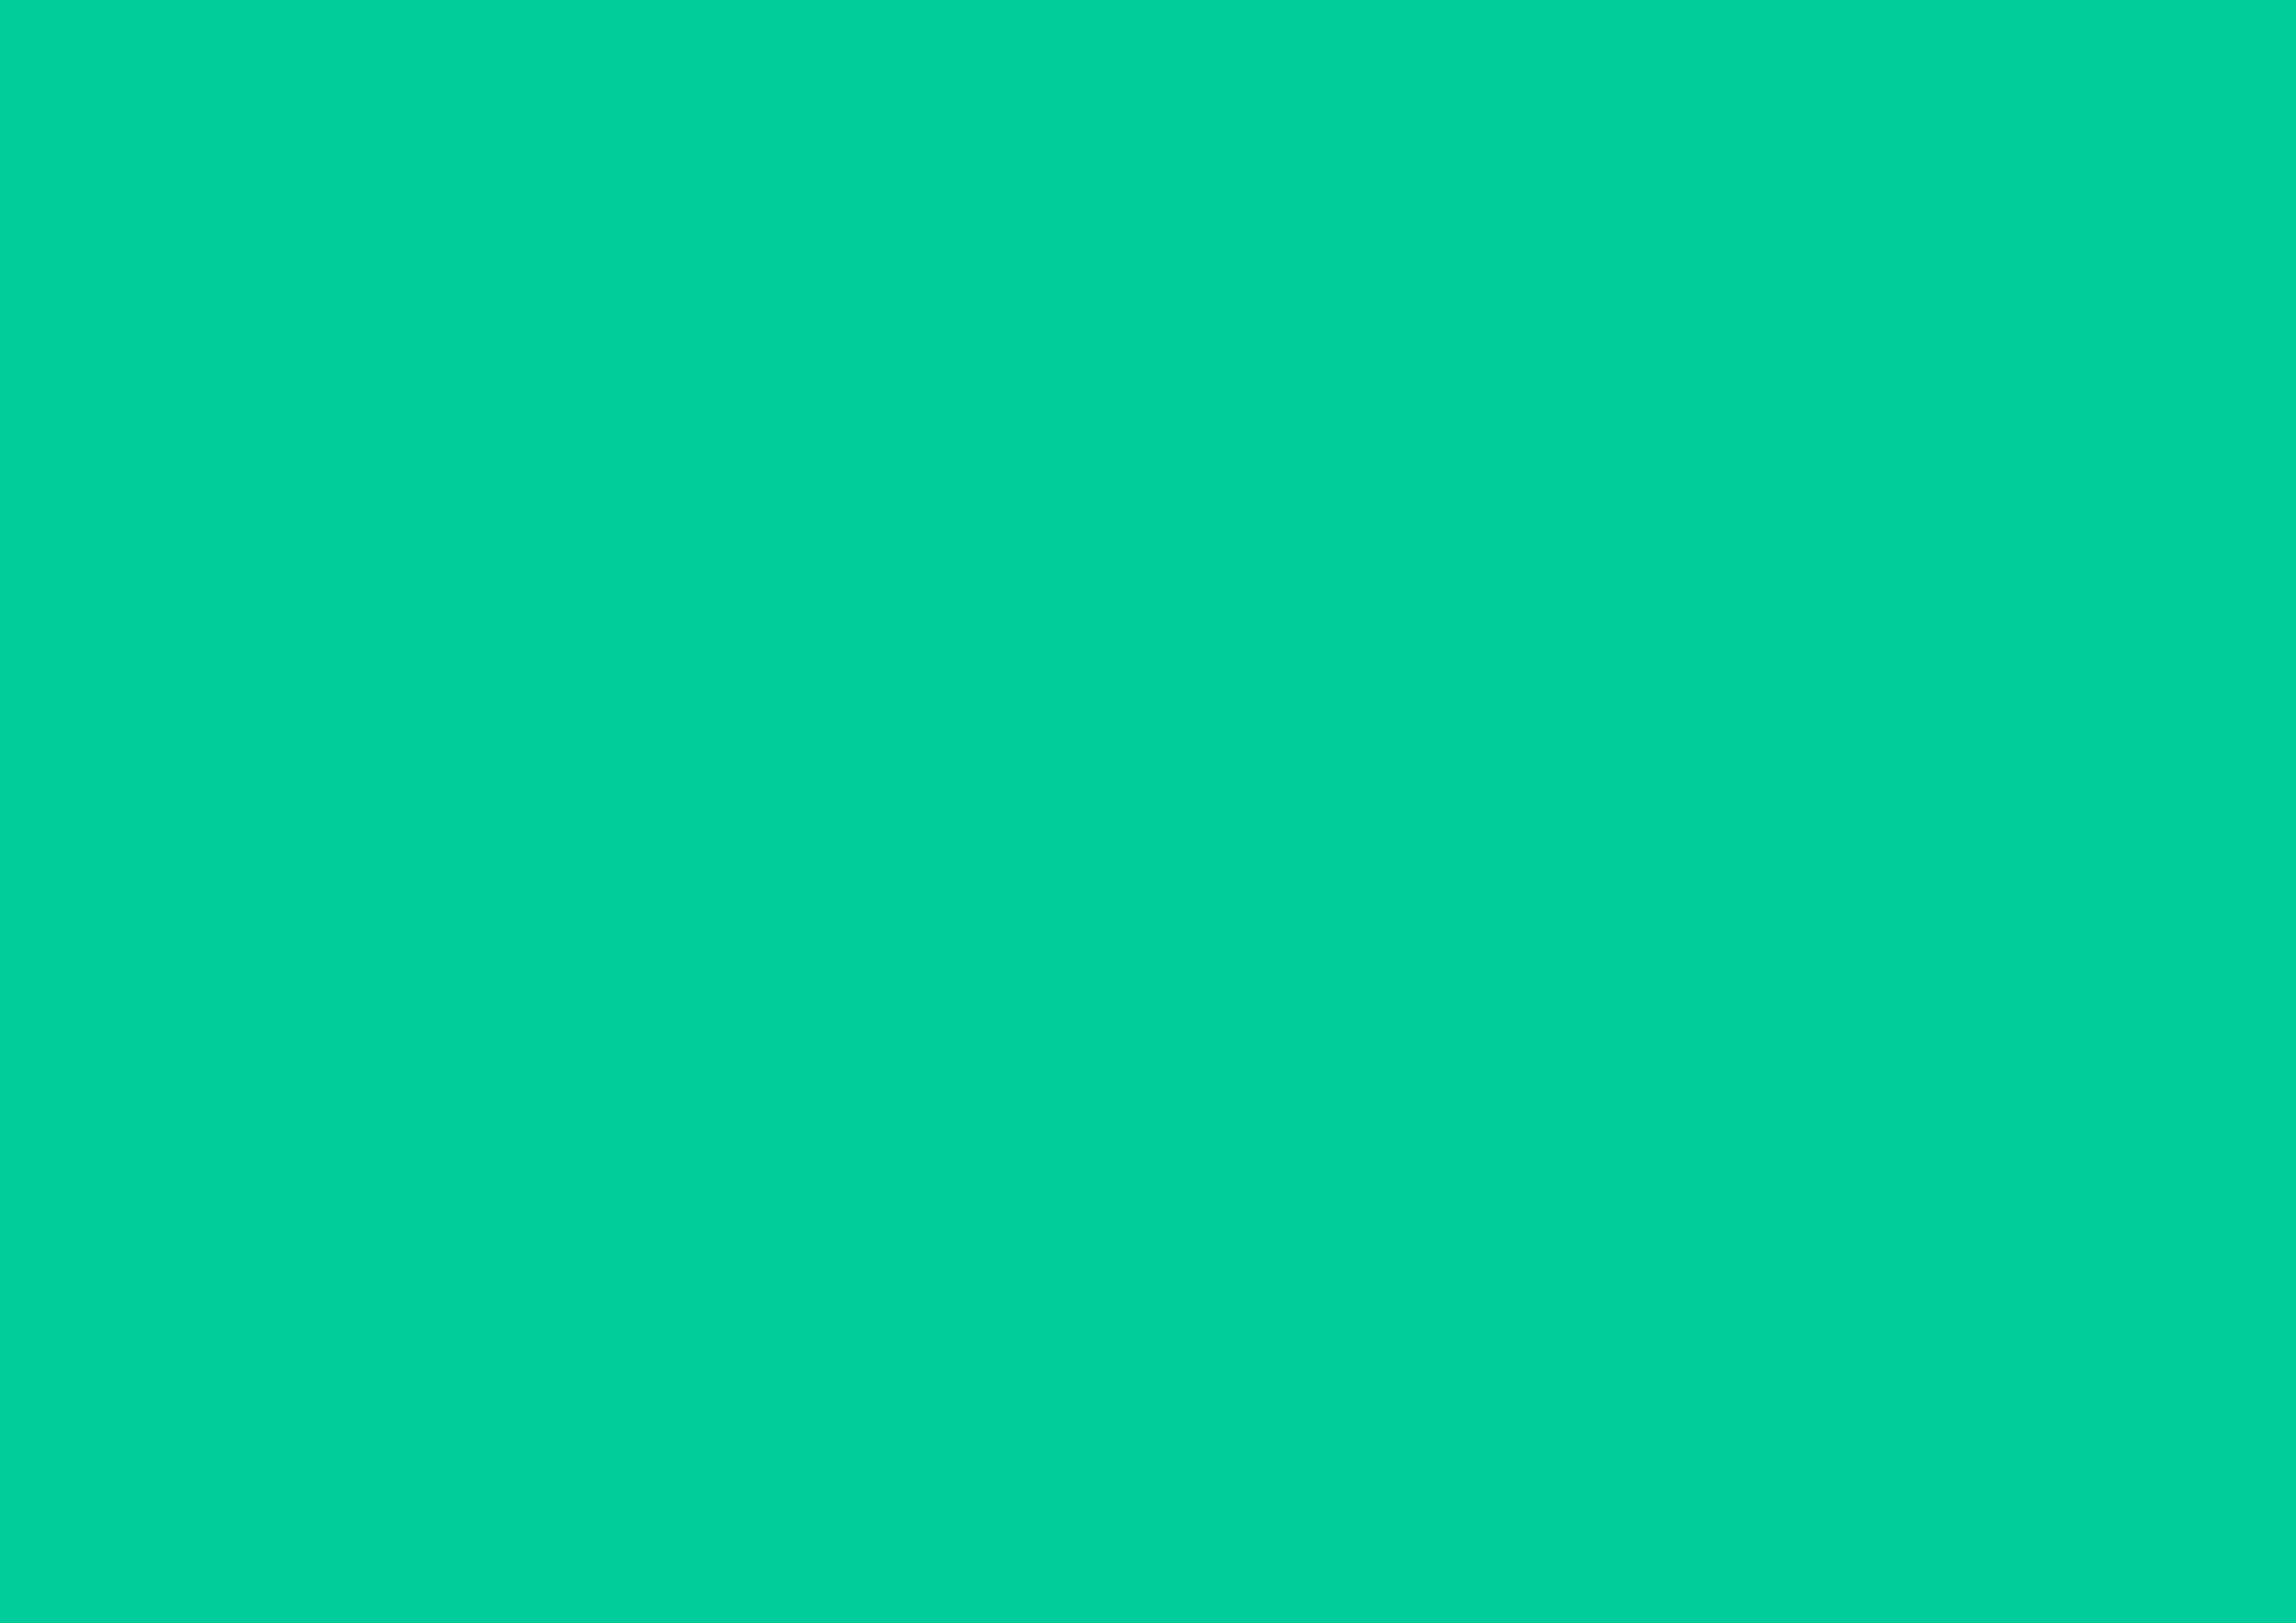 3508x2480 Caribbean Green Solid Color Background